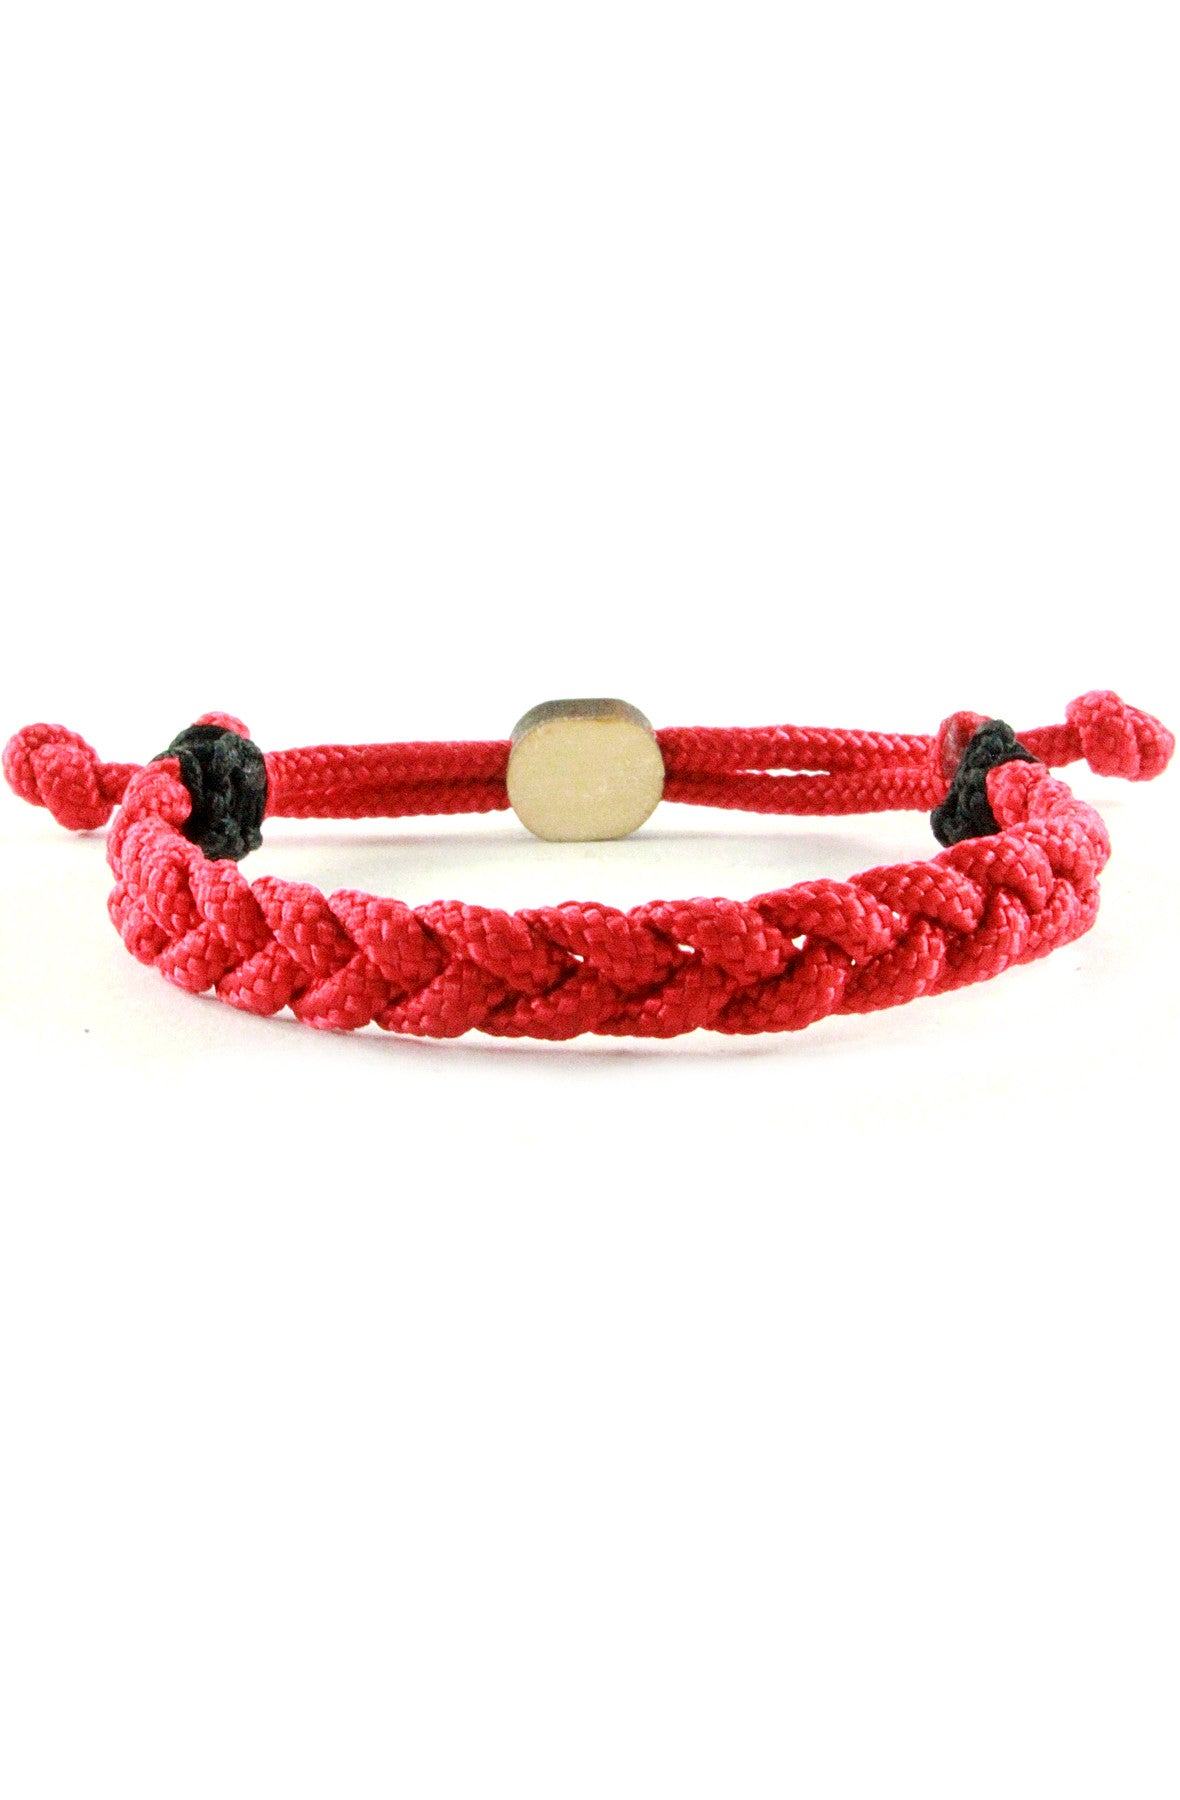 red bracelets in of evil good wrap amulet from thread protection luck item fate jewelry bracelet eye string